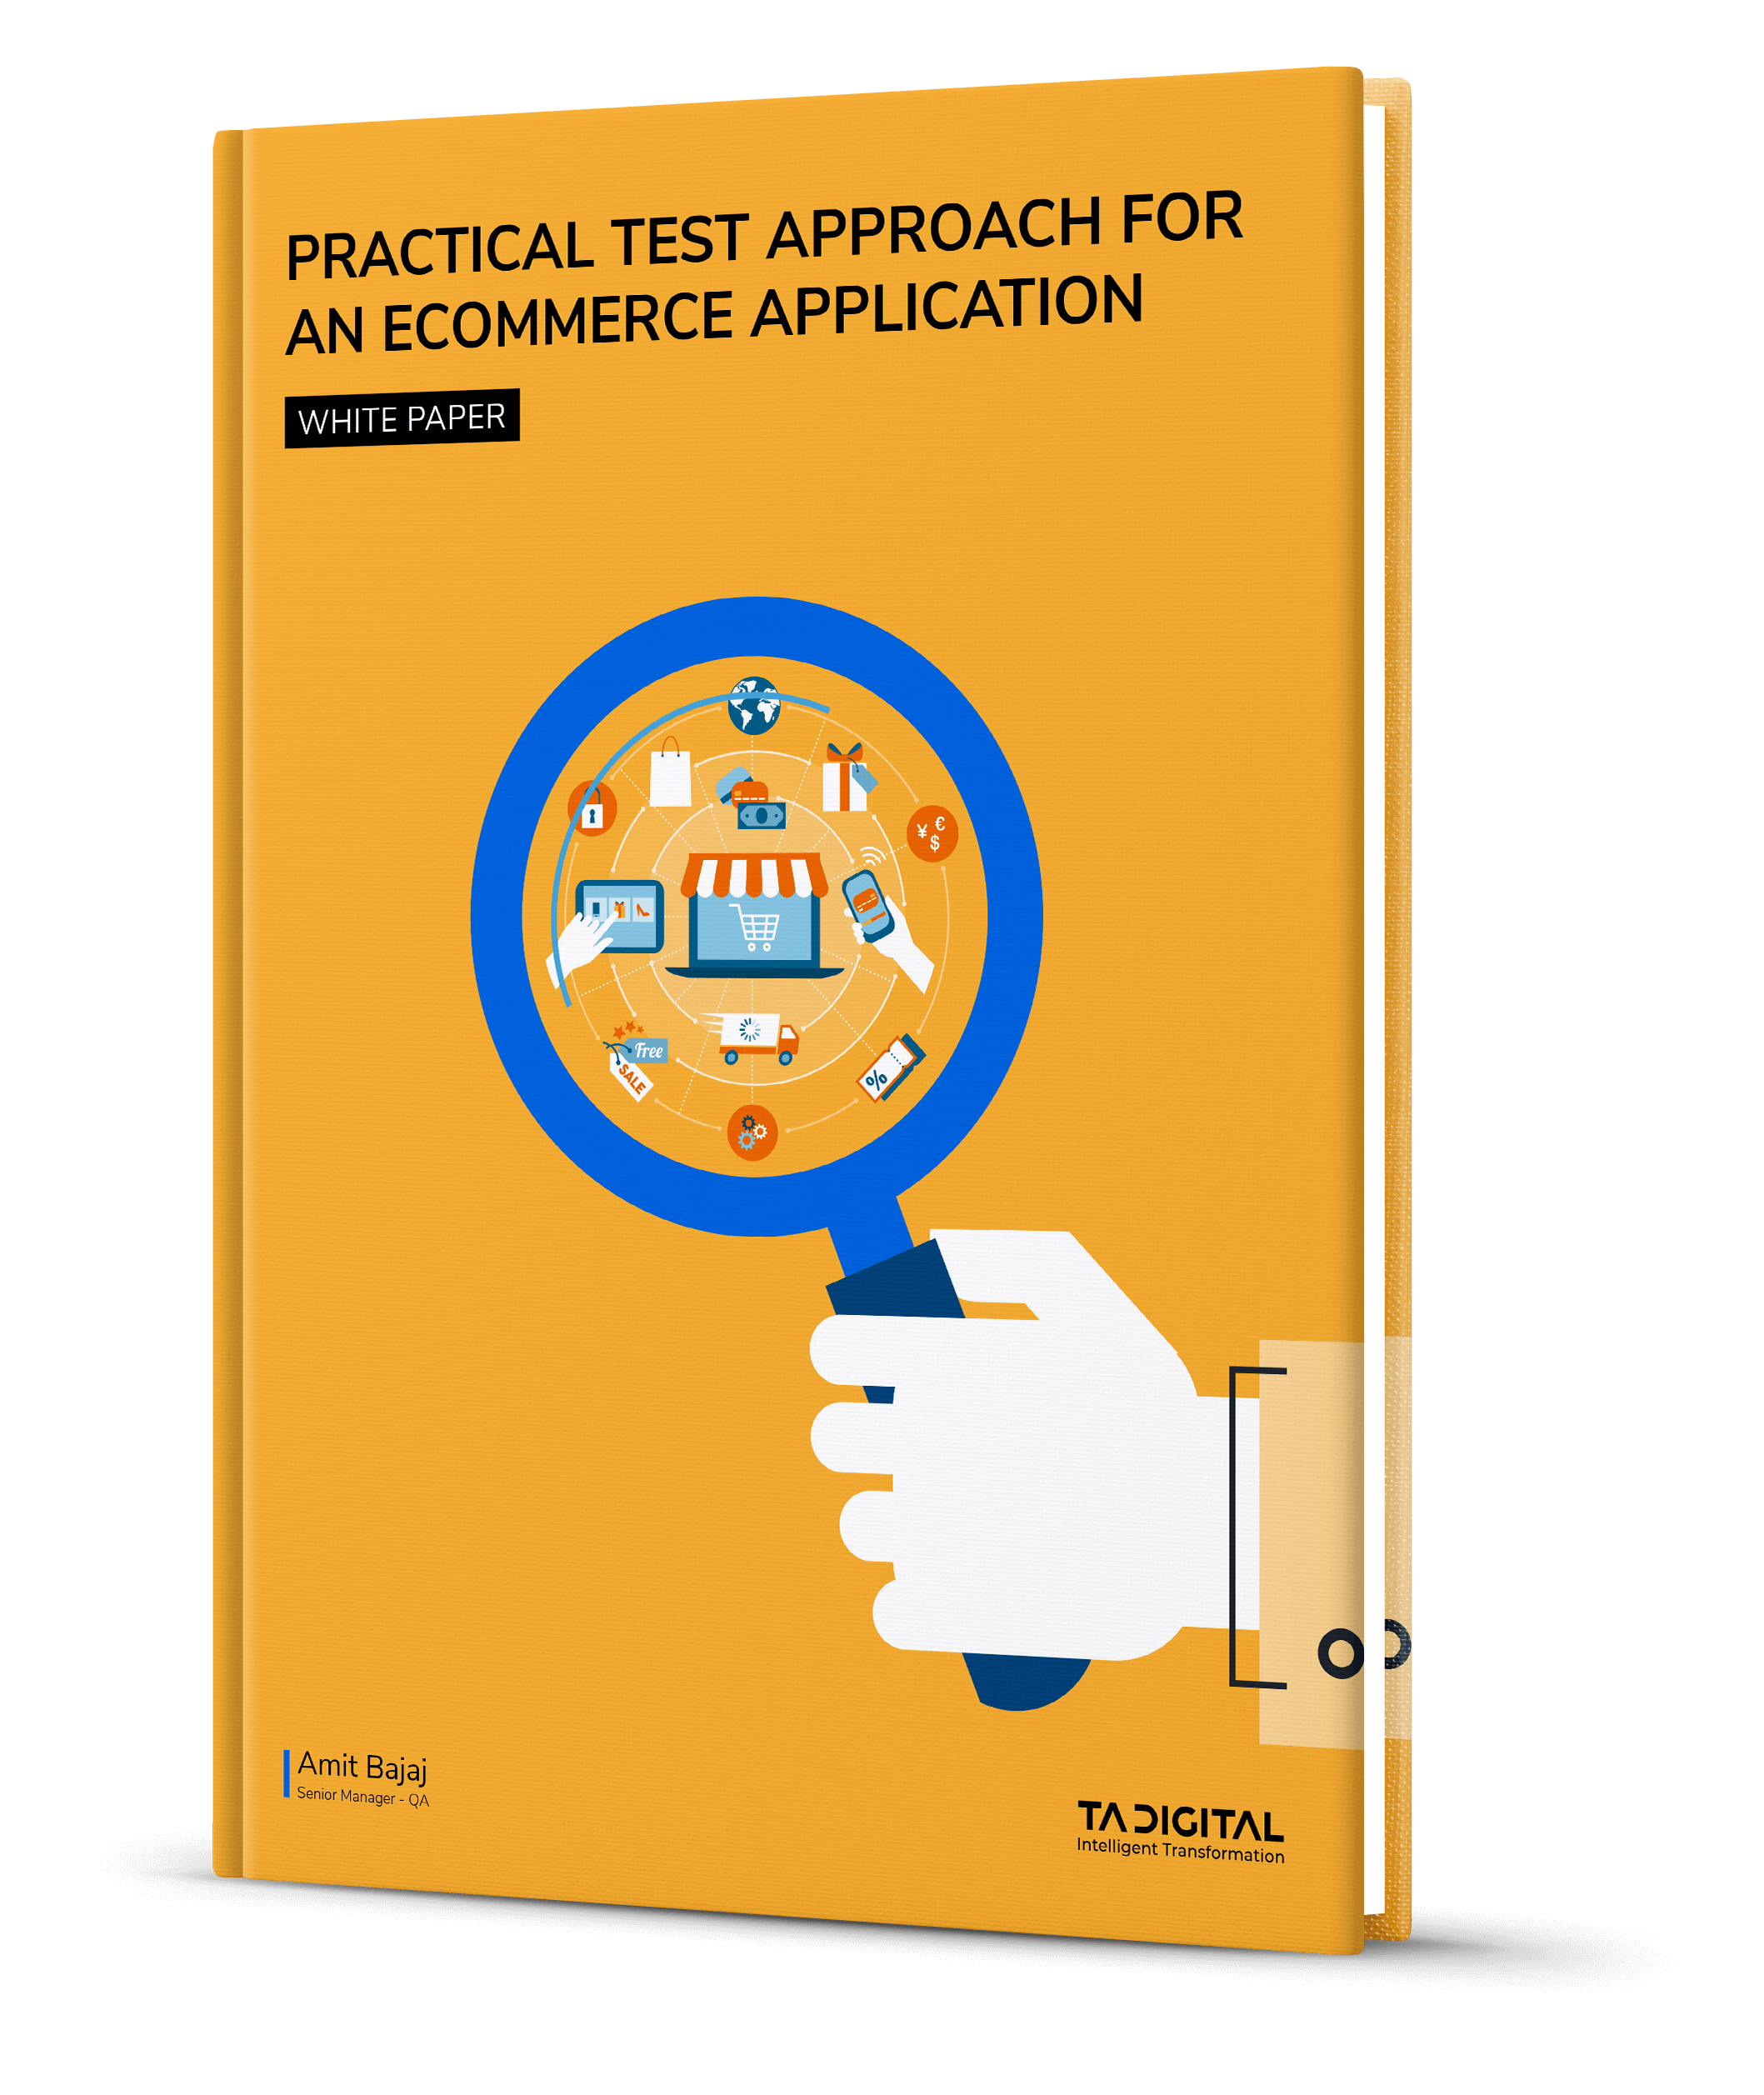 Practical Test Approach for an eCommerce Application